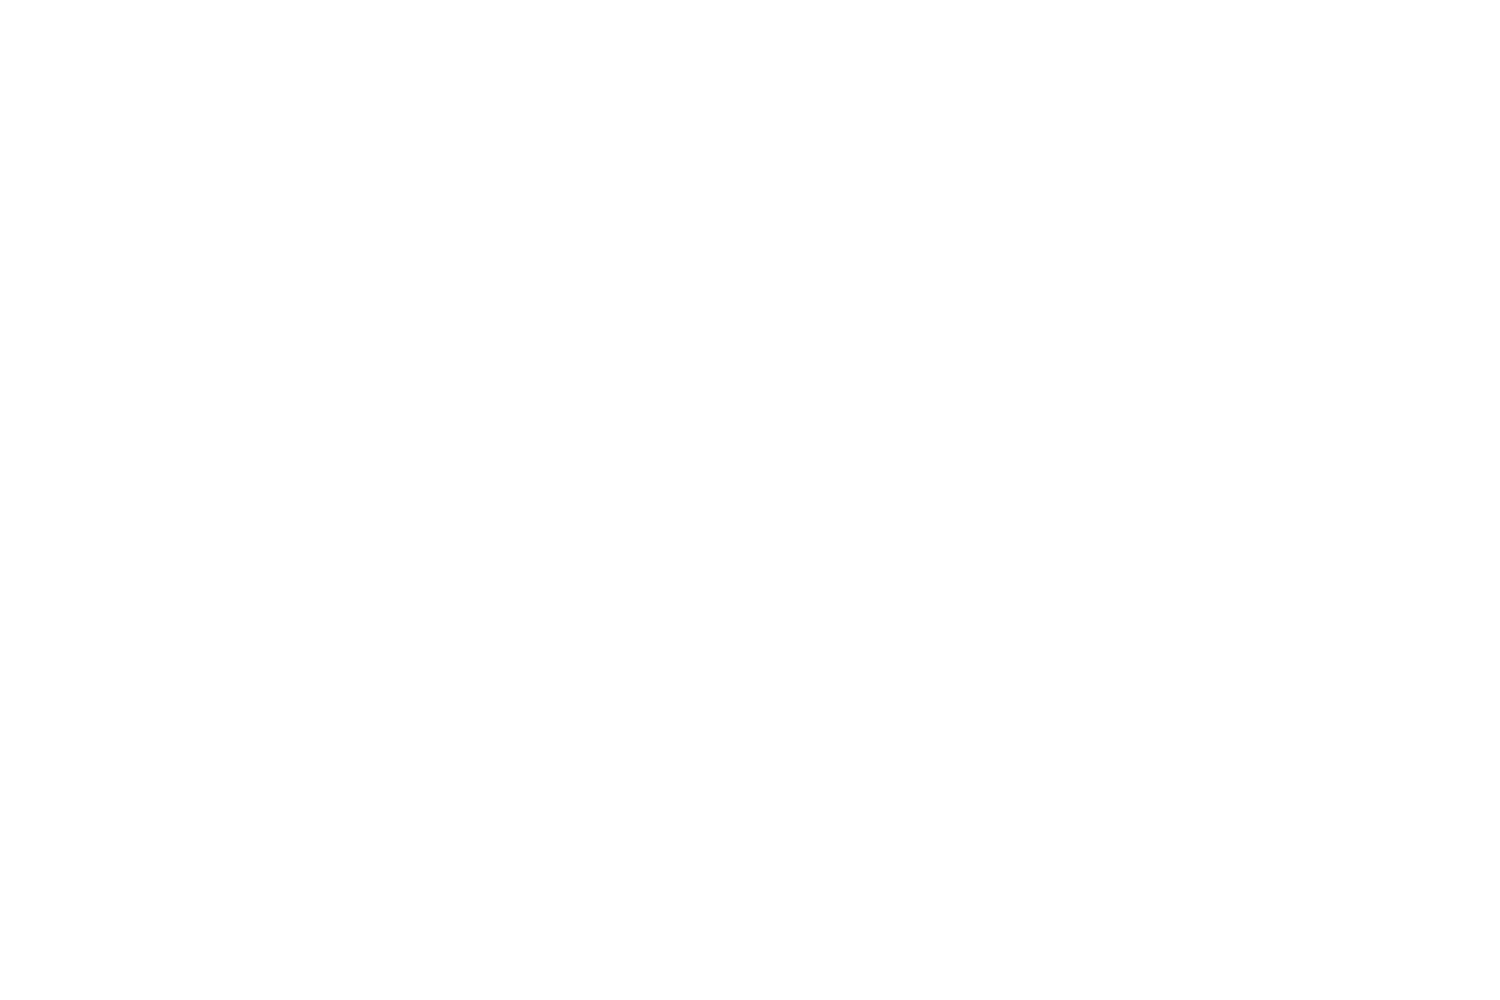 Sheila Broderick Photography LLC